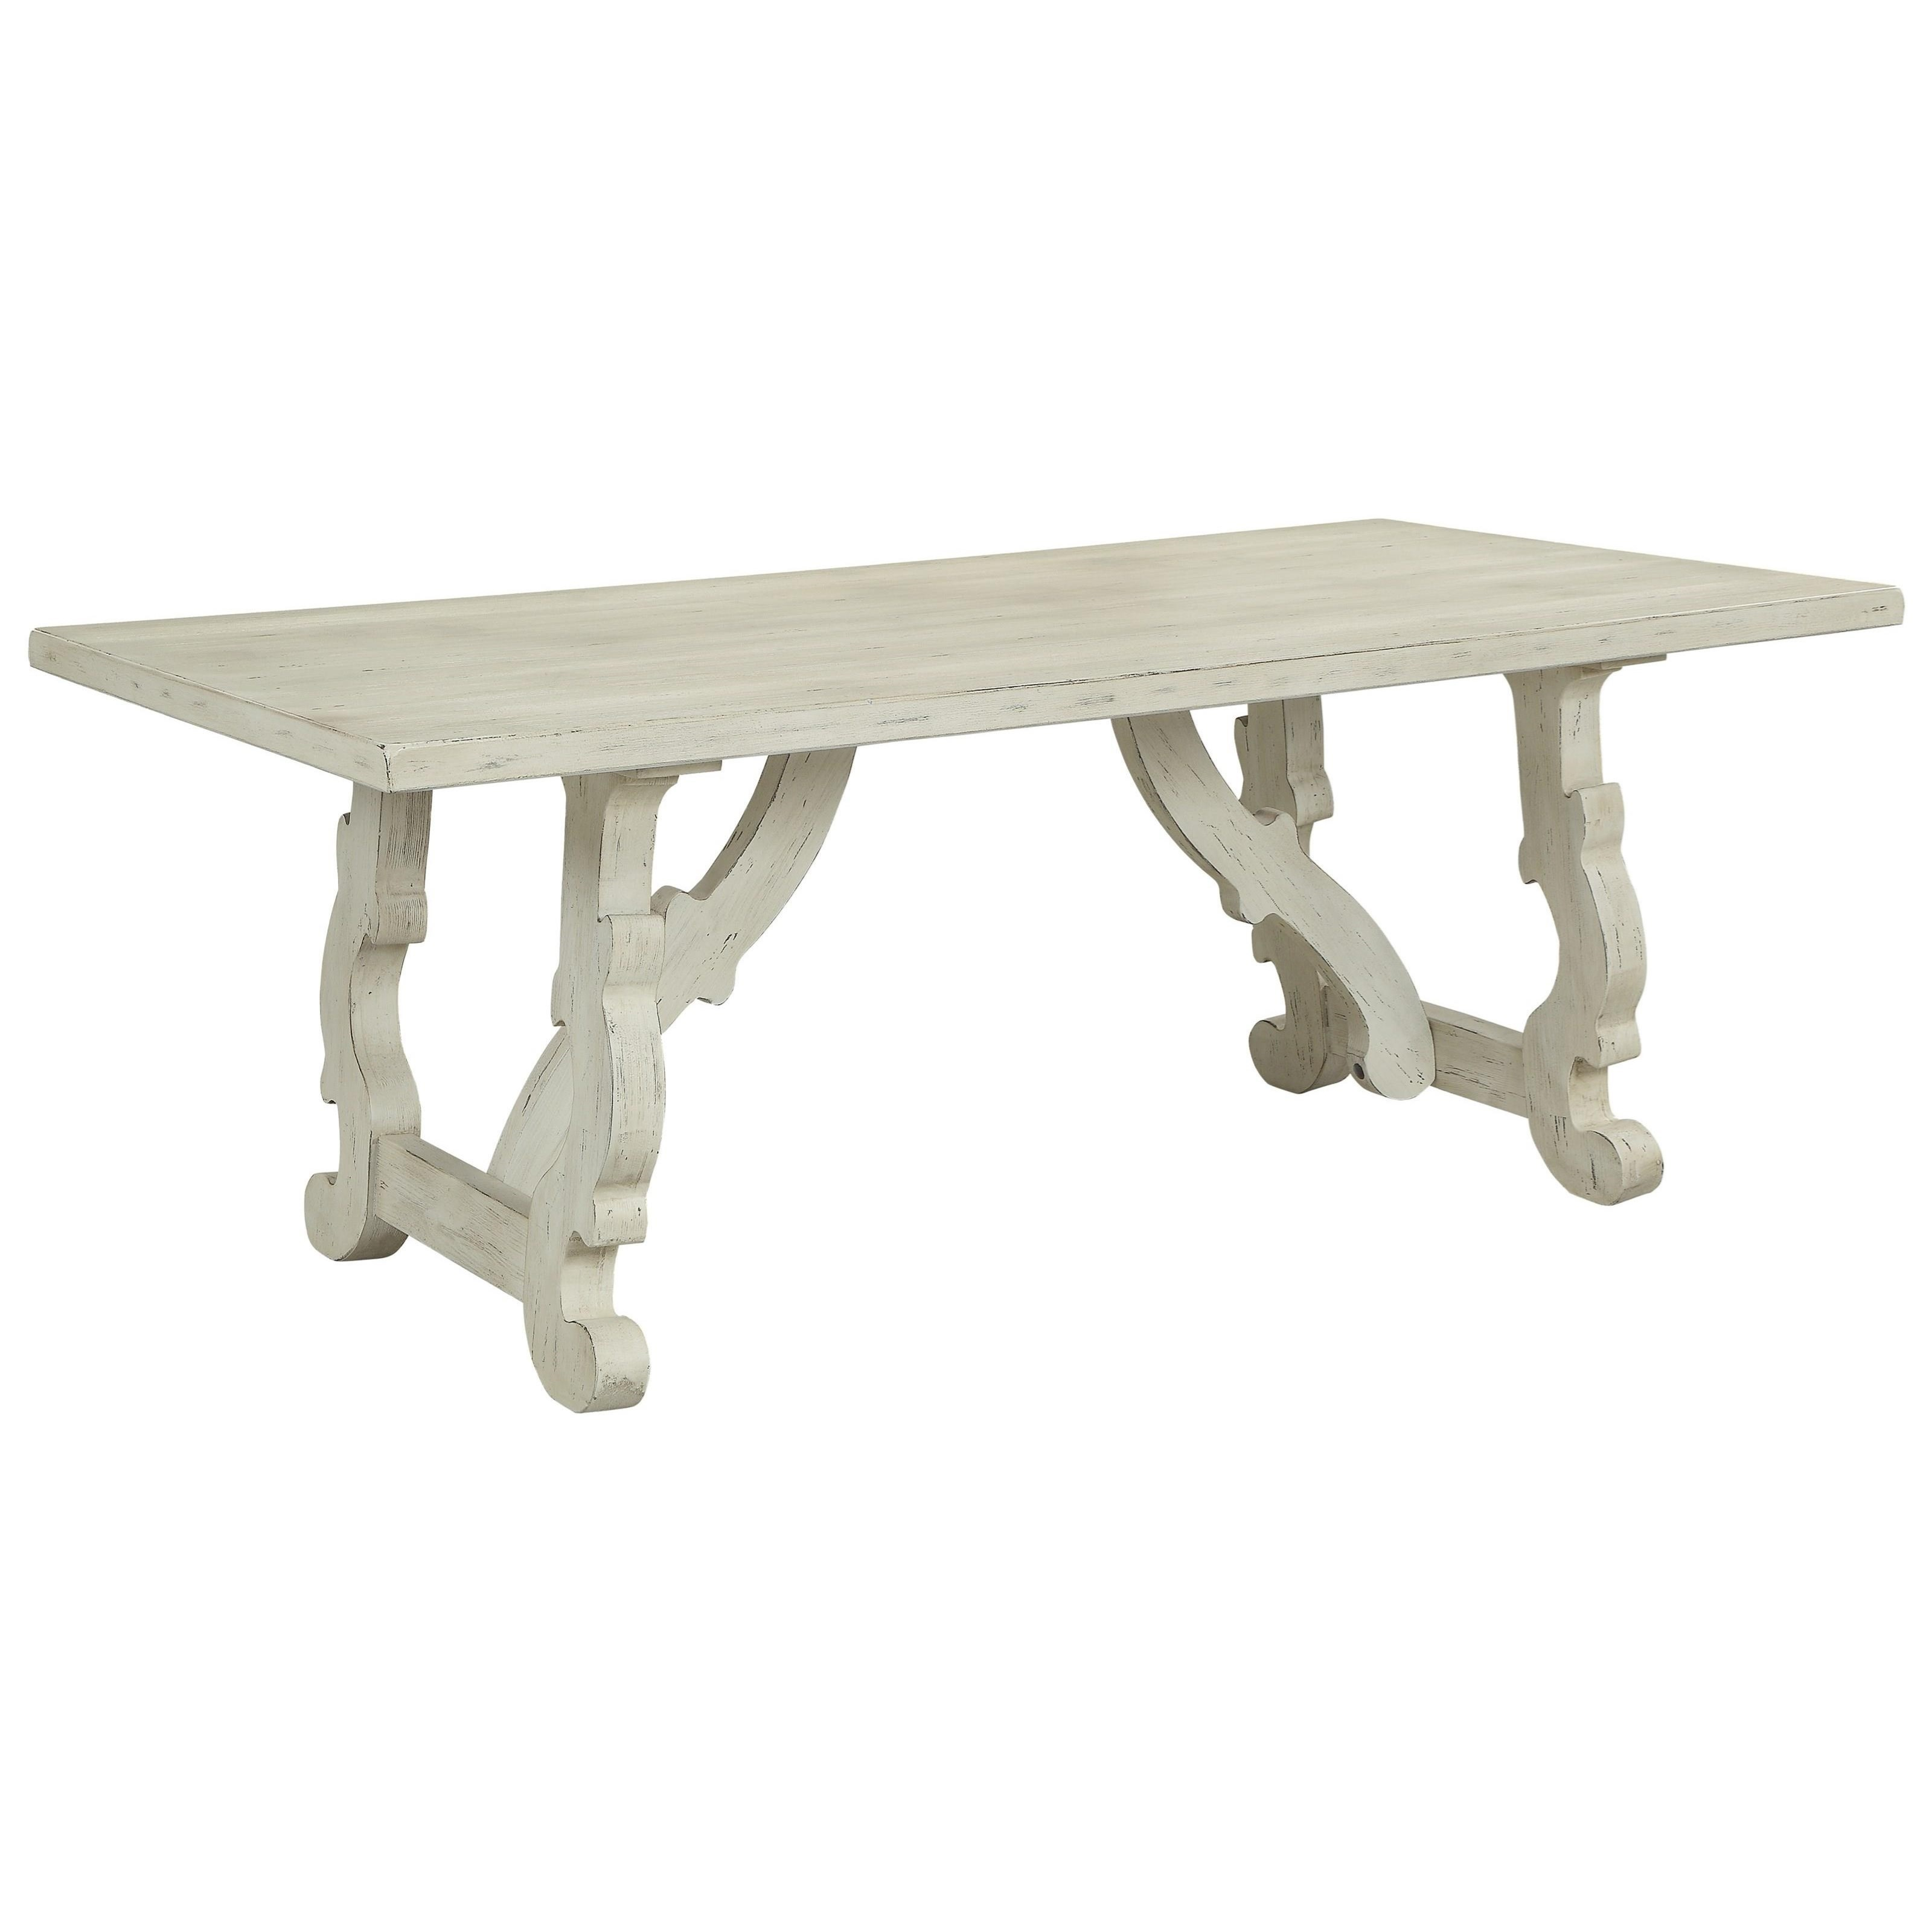 Orchard Park Orchard Park Dining Table by C2C at Walker's Furniture